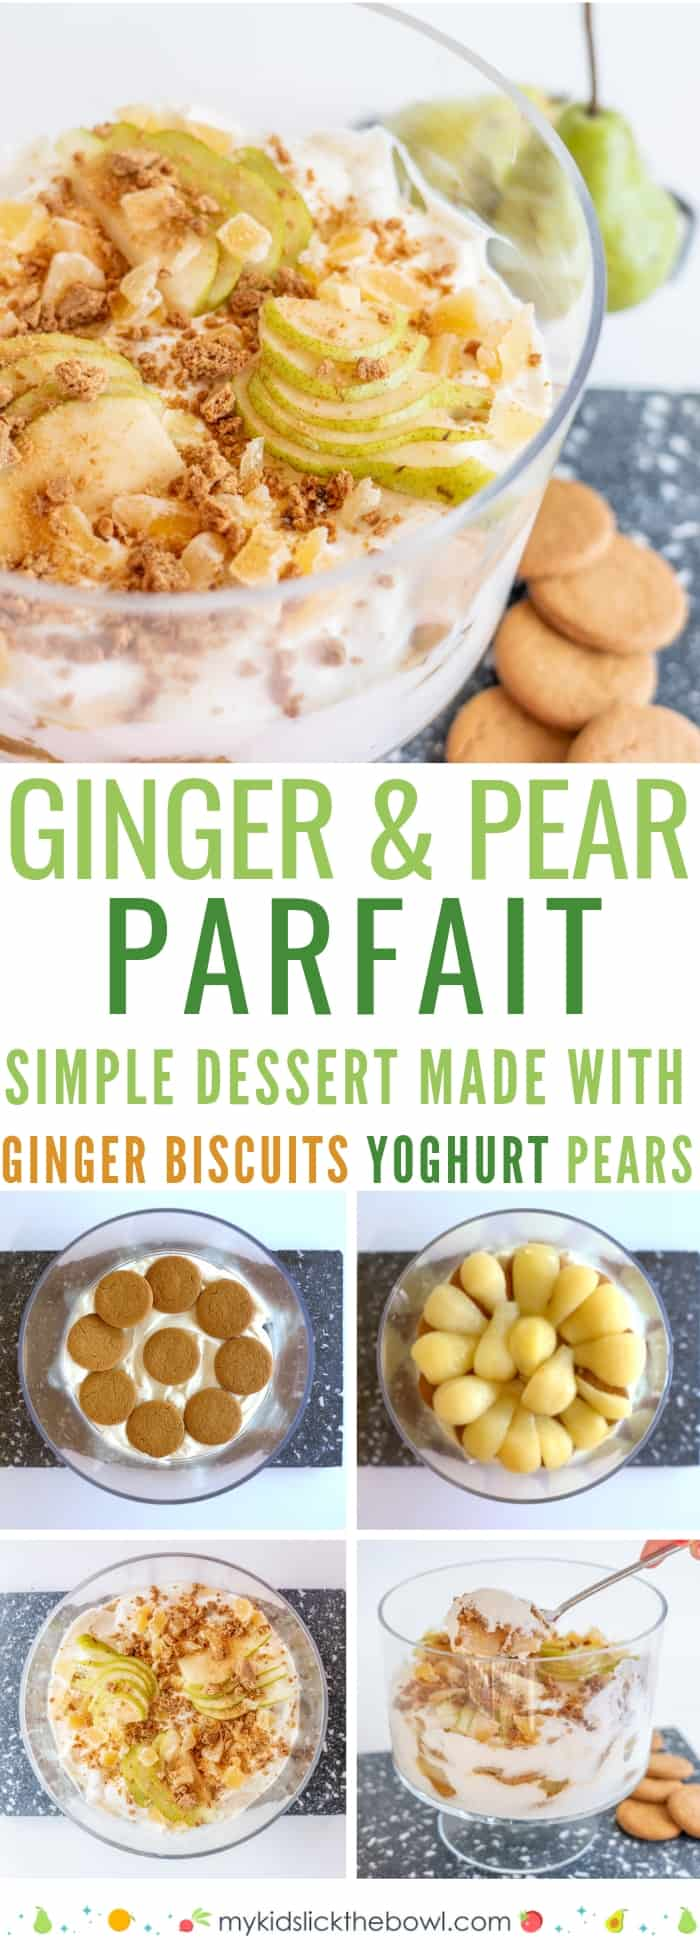 Ginger and pear parfait step by step images